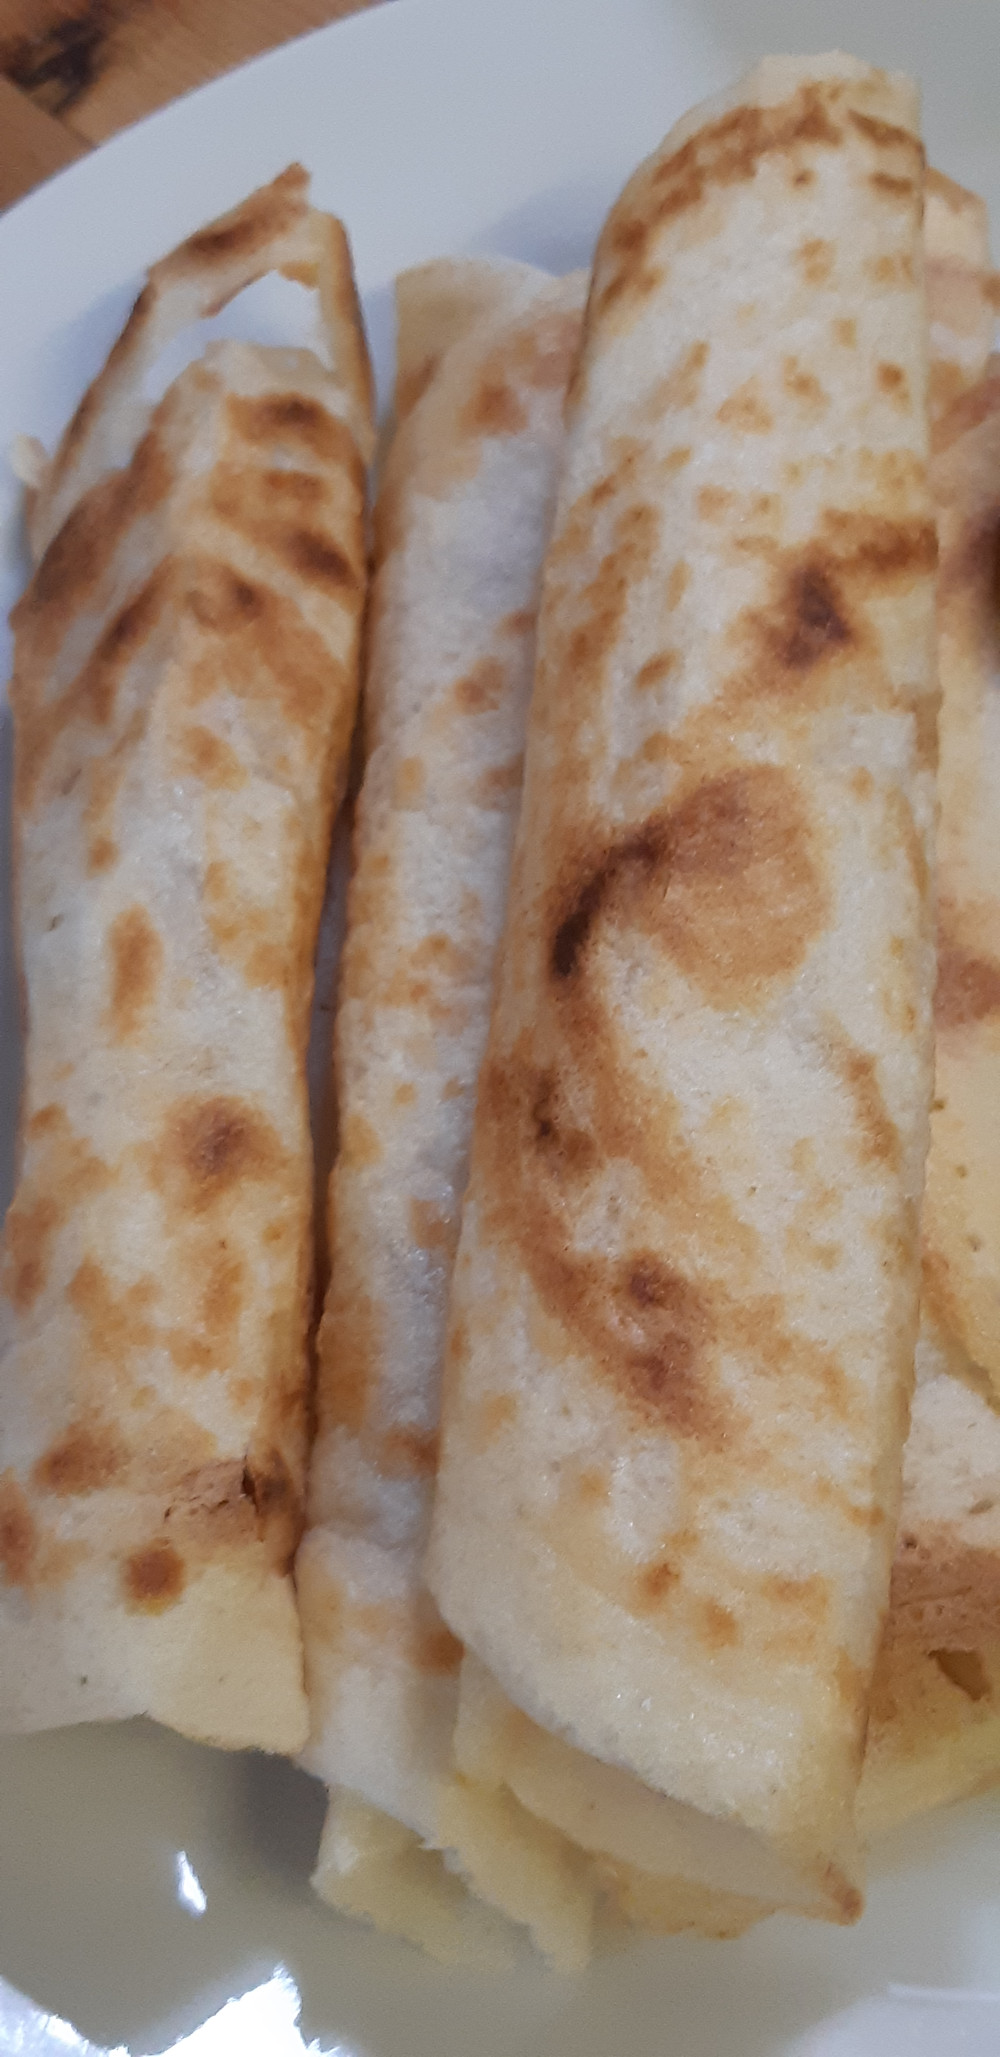 Crispy rolled up dosa's